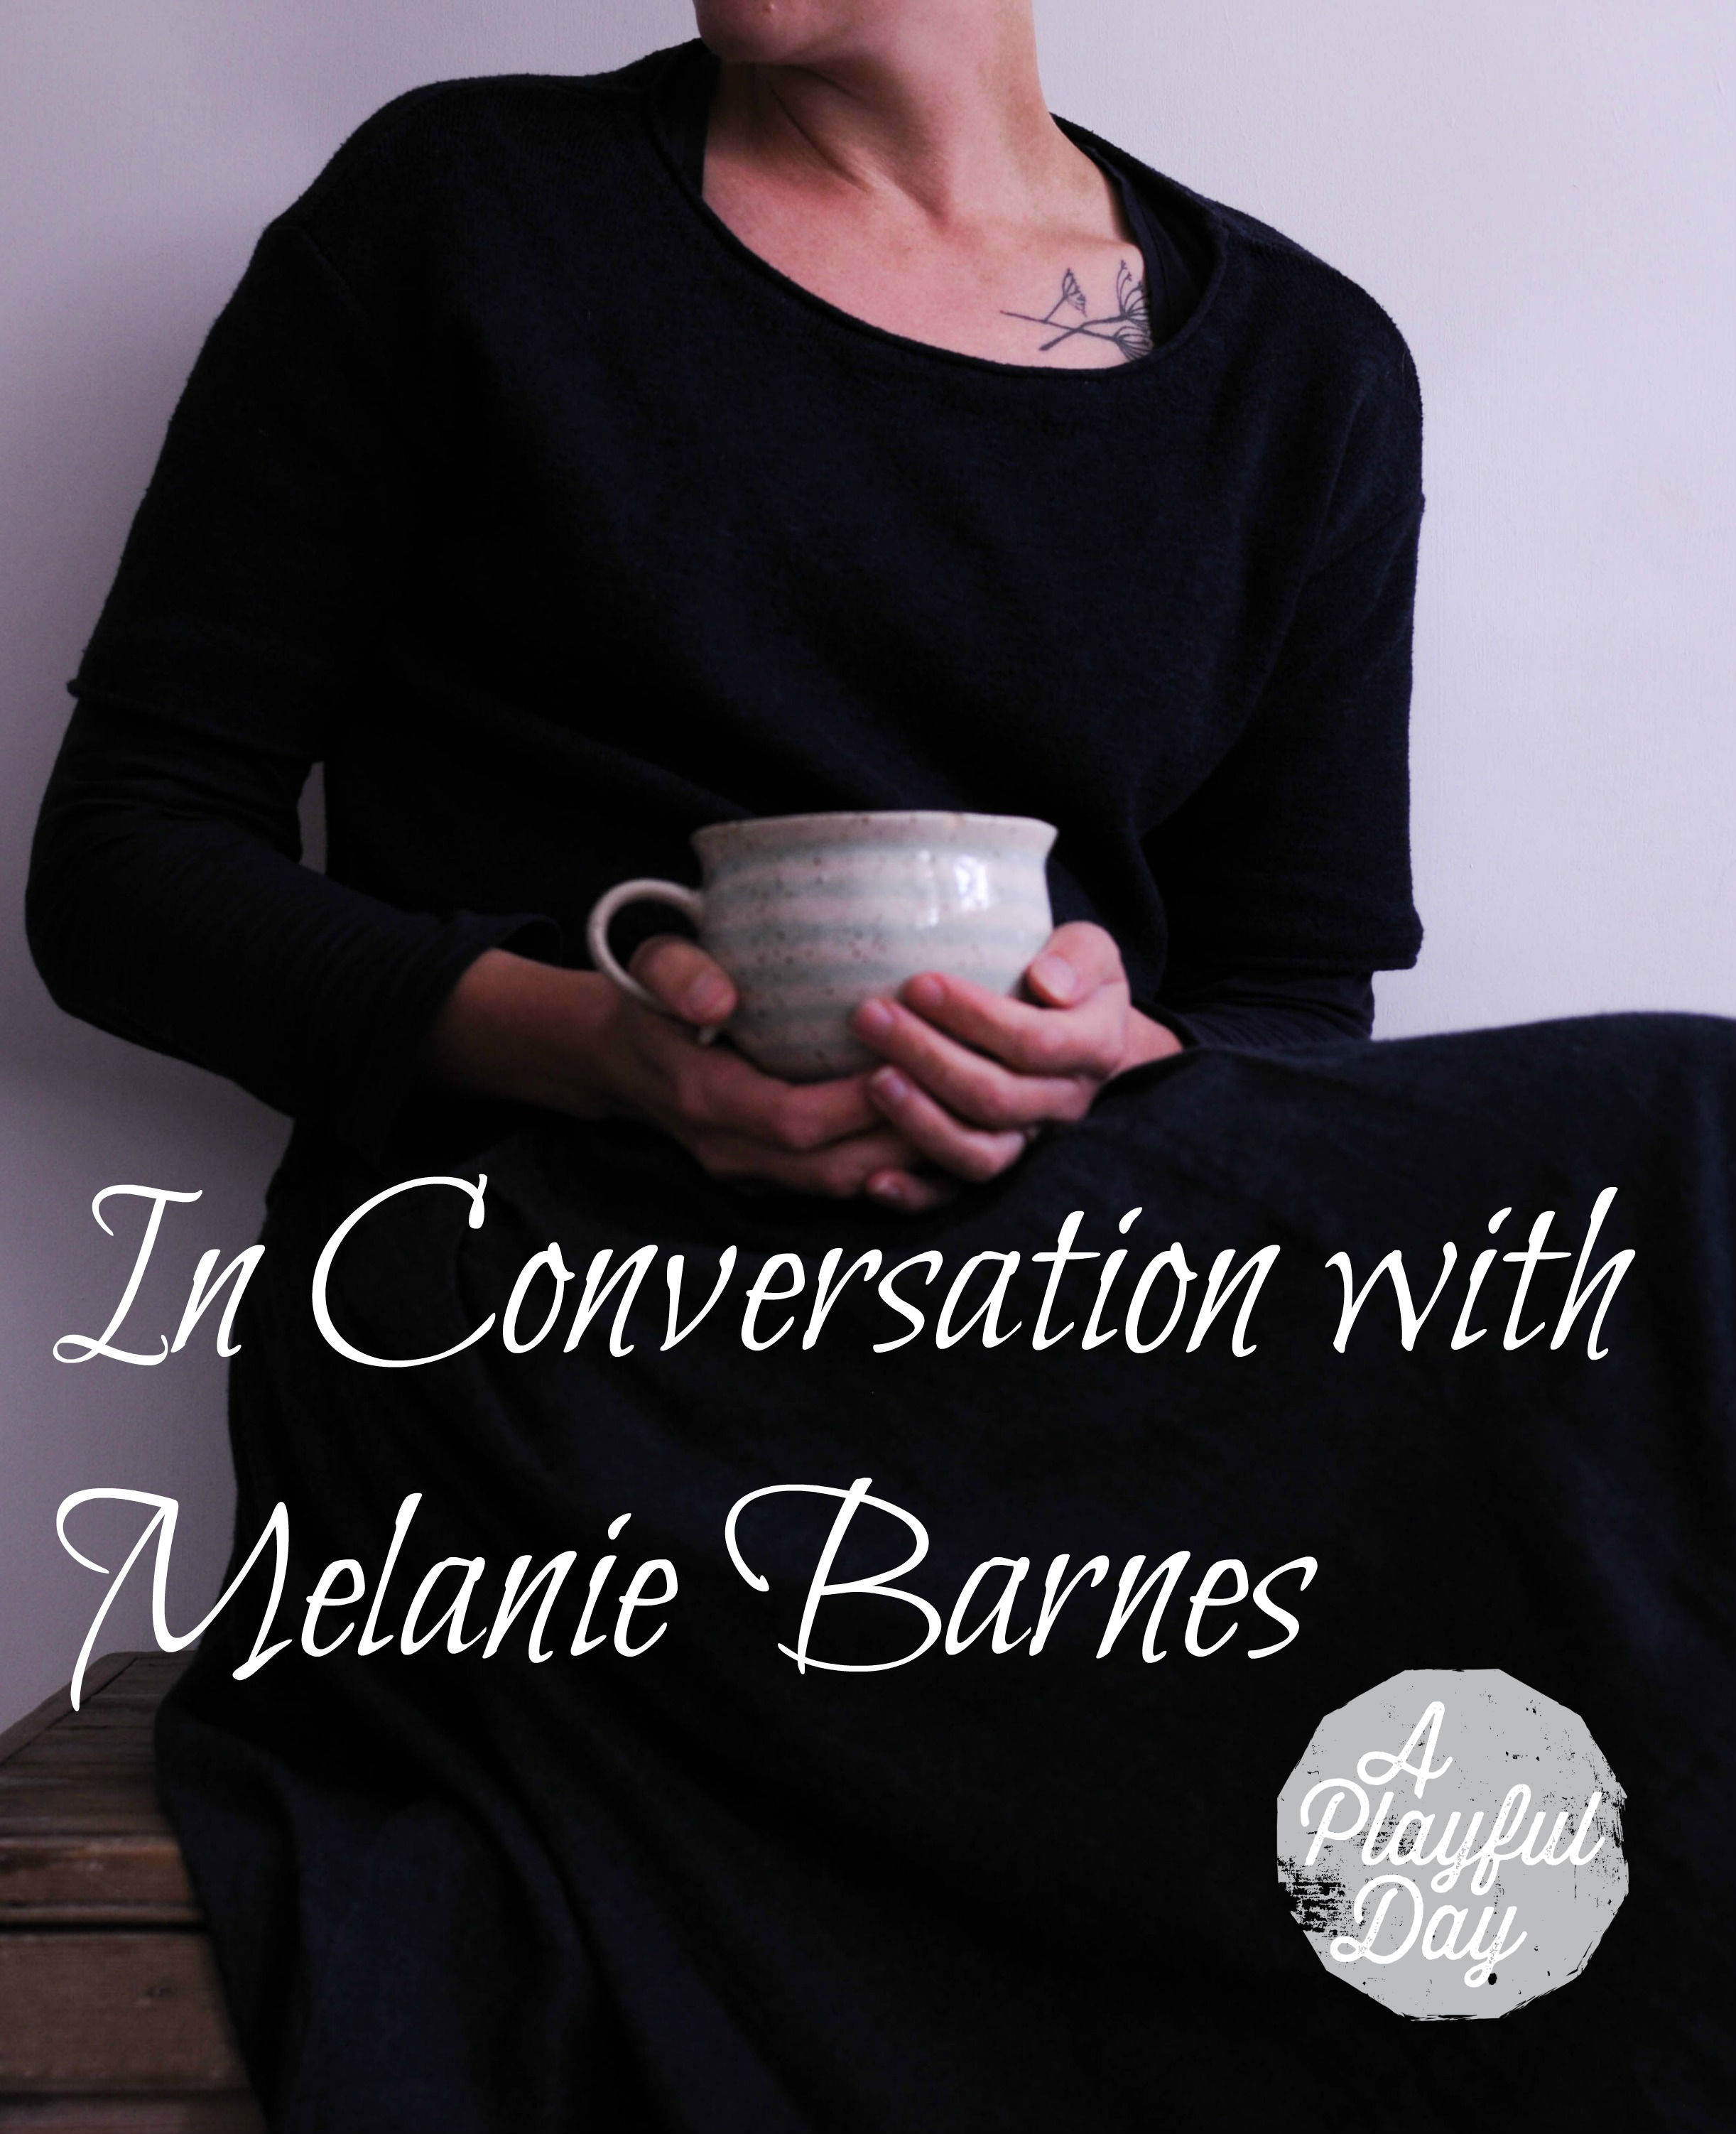 The APD Podcast,Season 3: In Conversation with Melanie Barnes